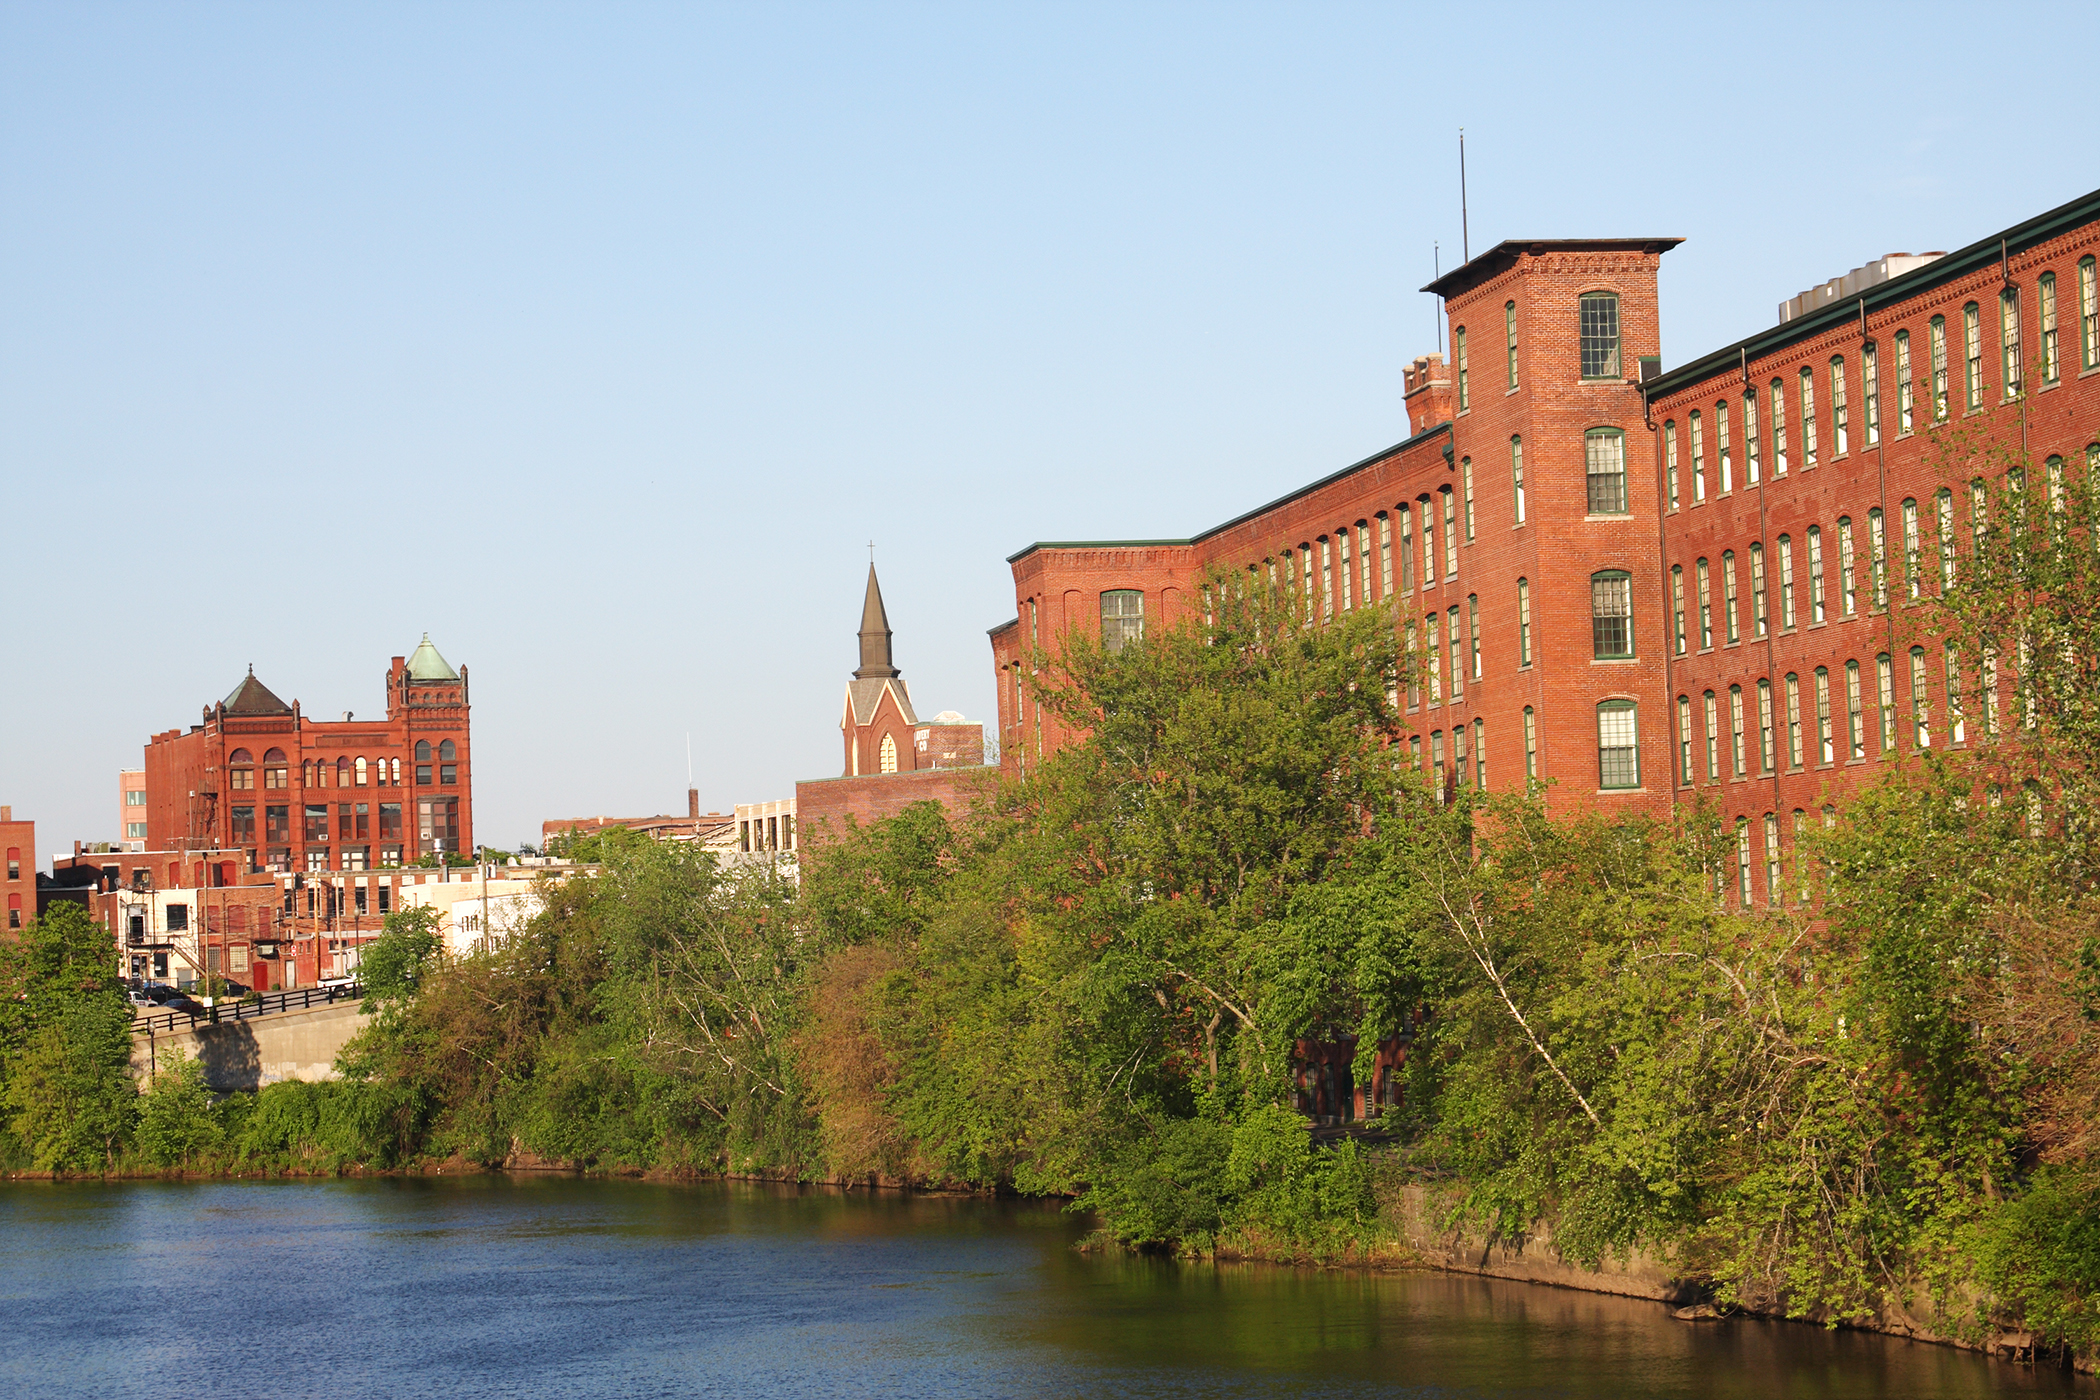 Nashua, New Hampshire. Nashua was actually the first winner of Money's Best Places to Live, in 1987. Today, the waterfront downtown is enjoying a renaissance.